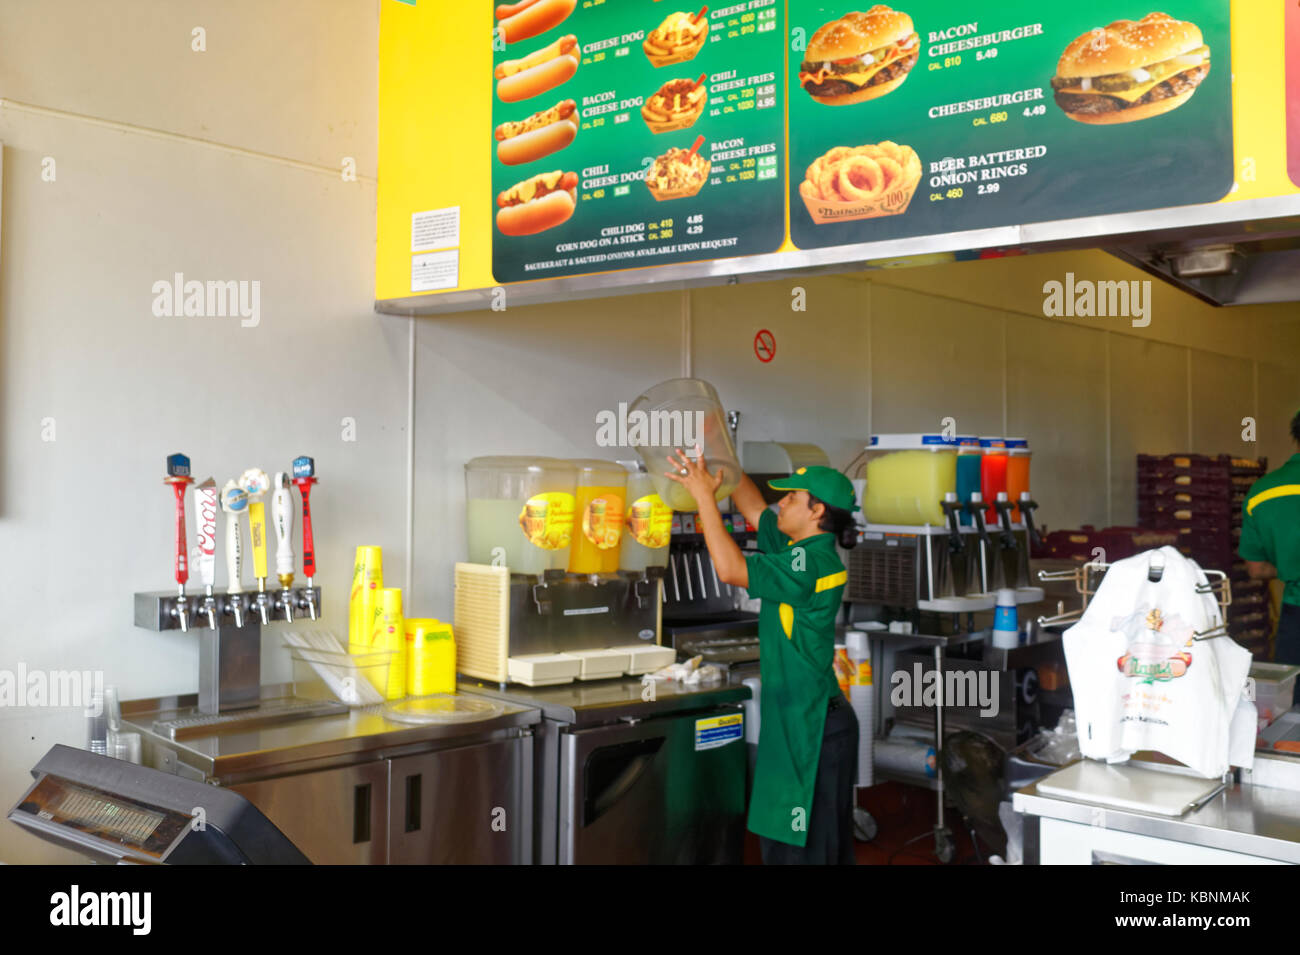 Worker's behind the counter at Nathan's Famous hot dog restaurant with the large menu board. - Stock Image